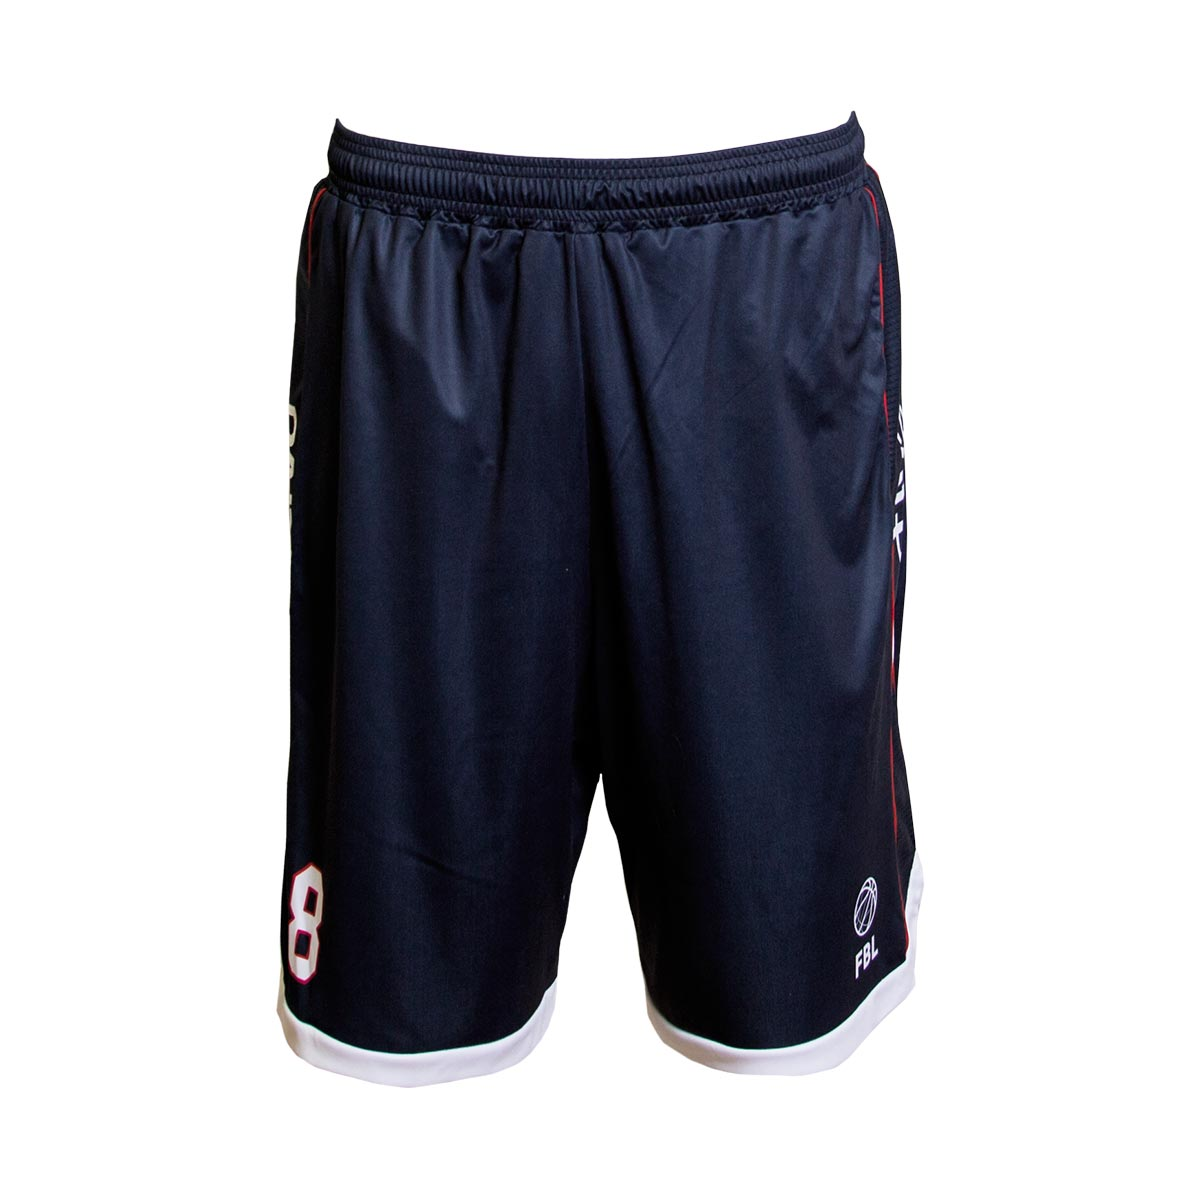 Baskettball Shorts